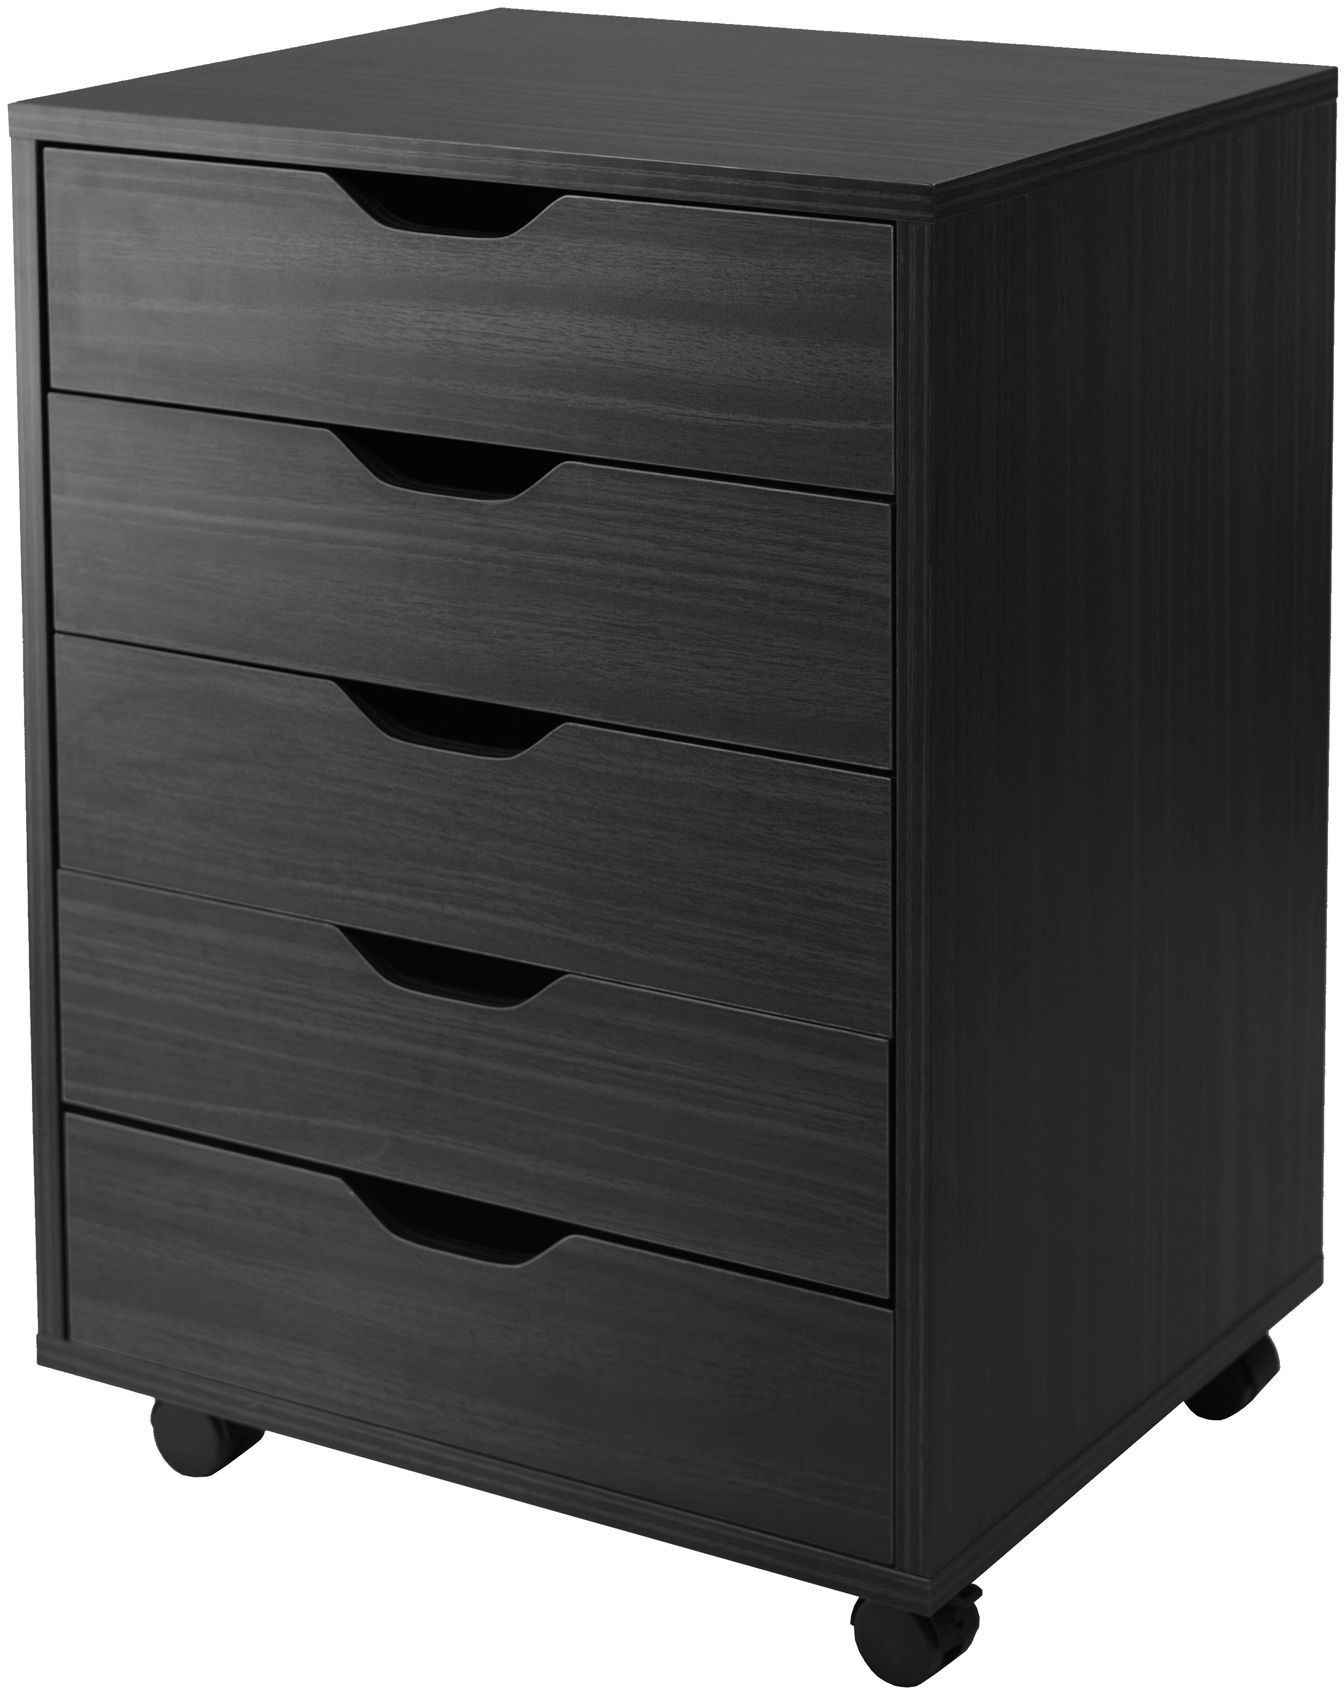 Halifax Black 5 Drawer Cabinet For Closet Office From